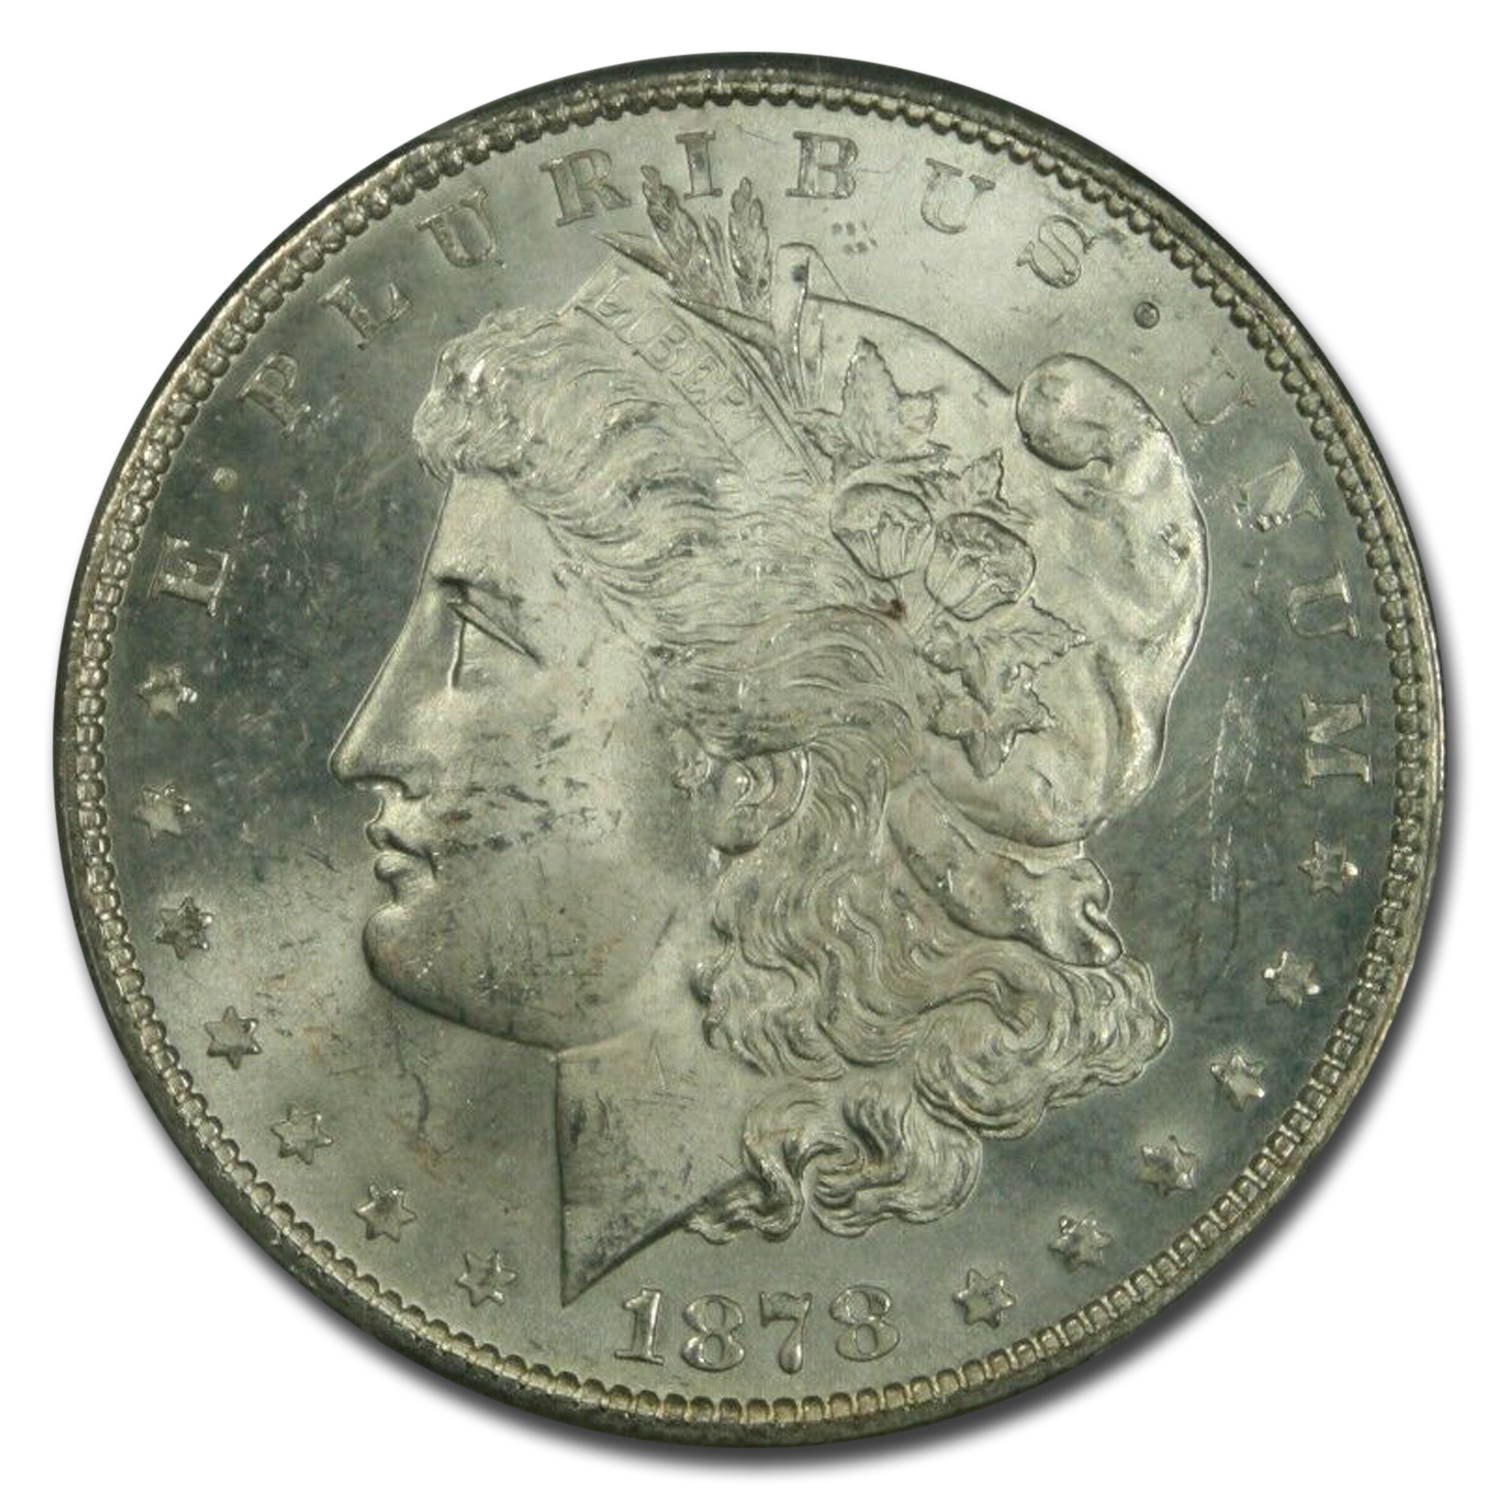 1878 Morgan Dollar - 7 TF Rev. of 78 MS-64+ Plus PCGS